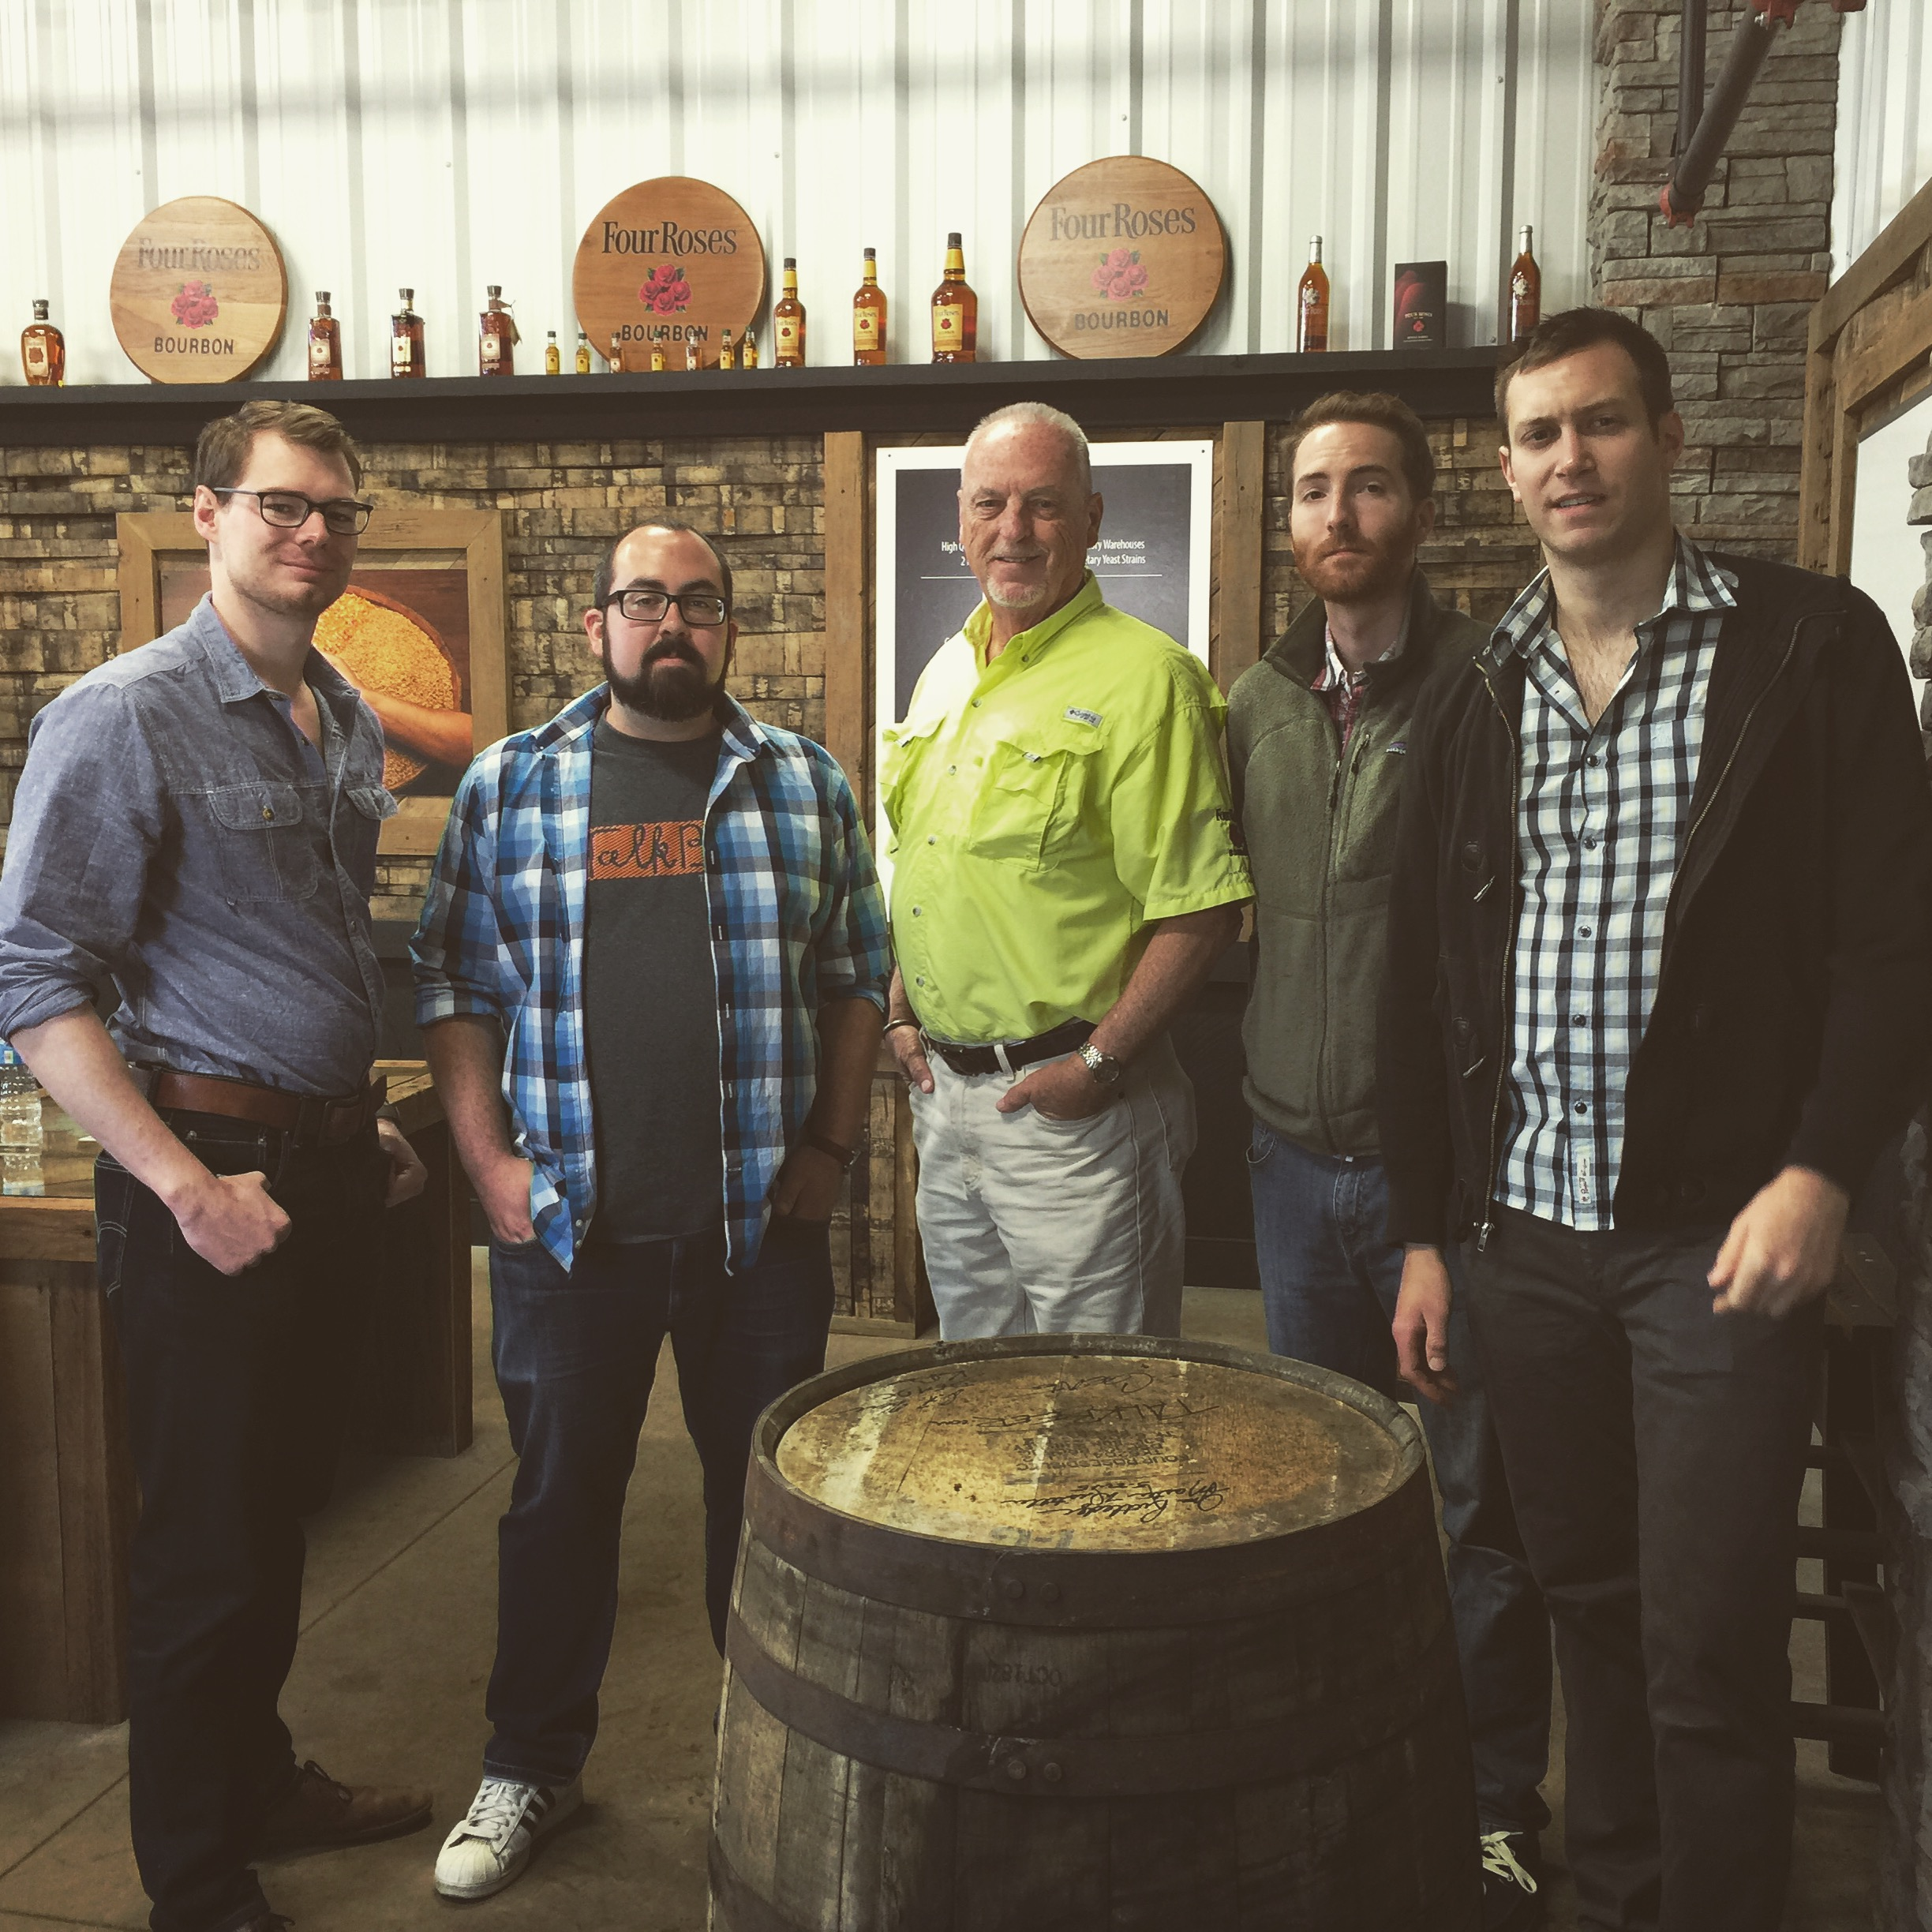 From left, me, Talk Beer Gene (my best man), Jim Rutledge (Four Roses Master Distiller), Doctor Dan, and Keith.